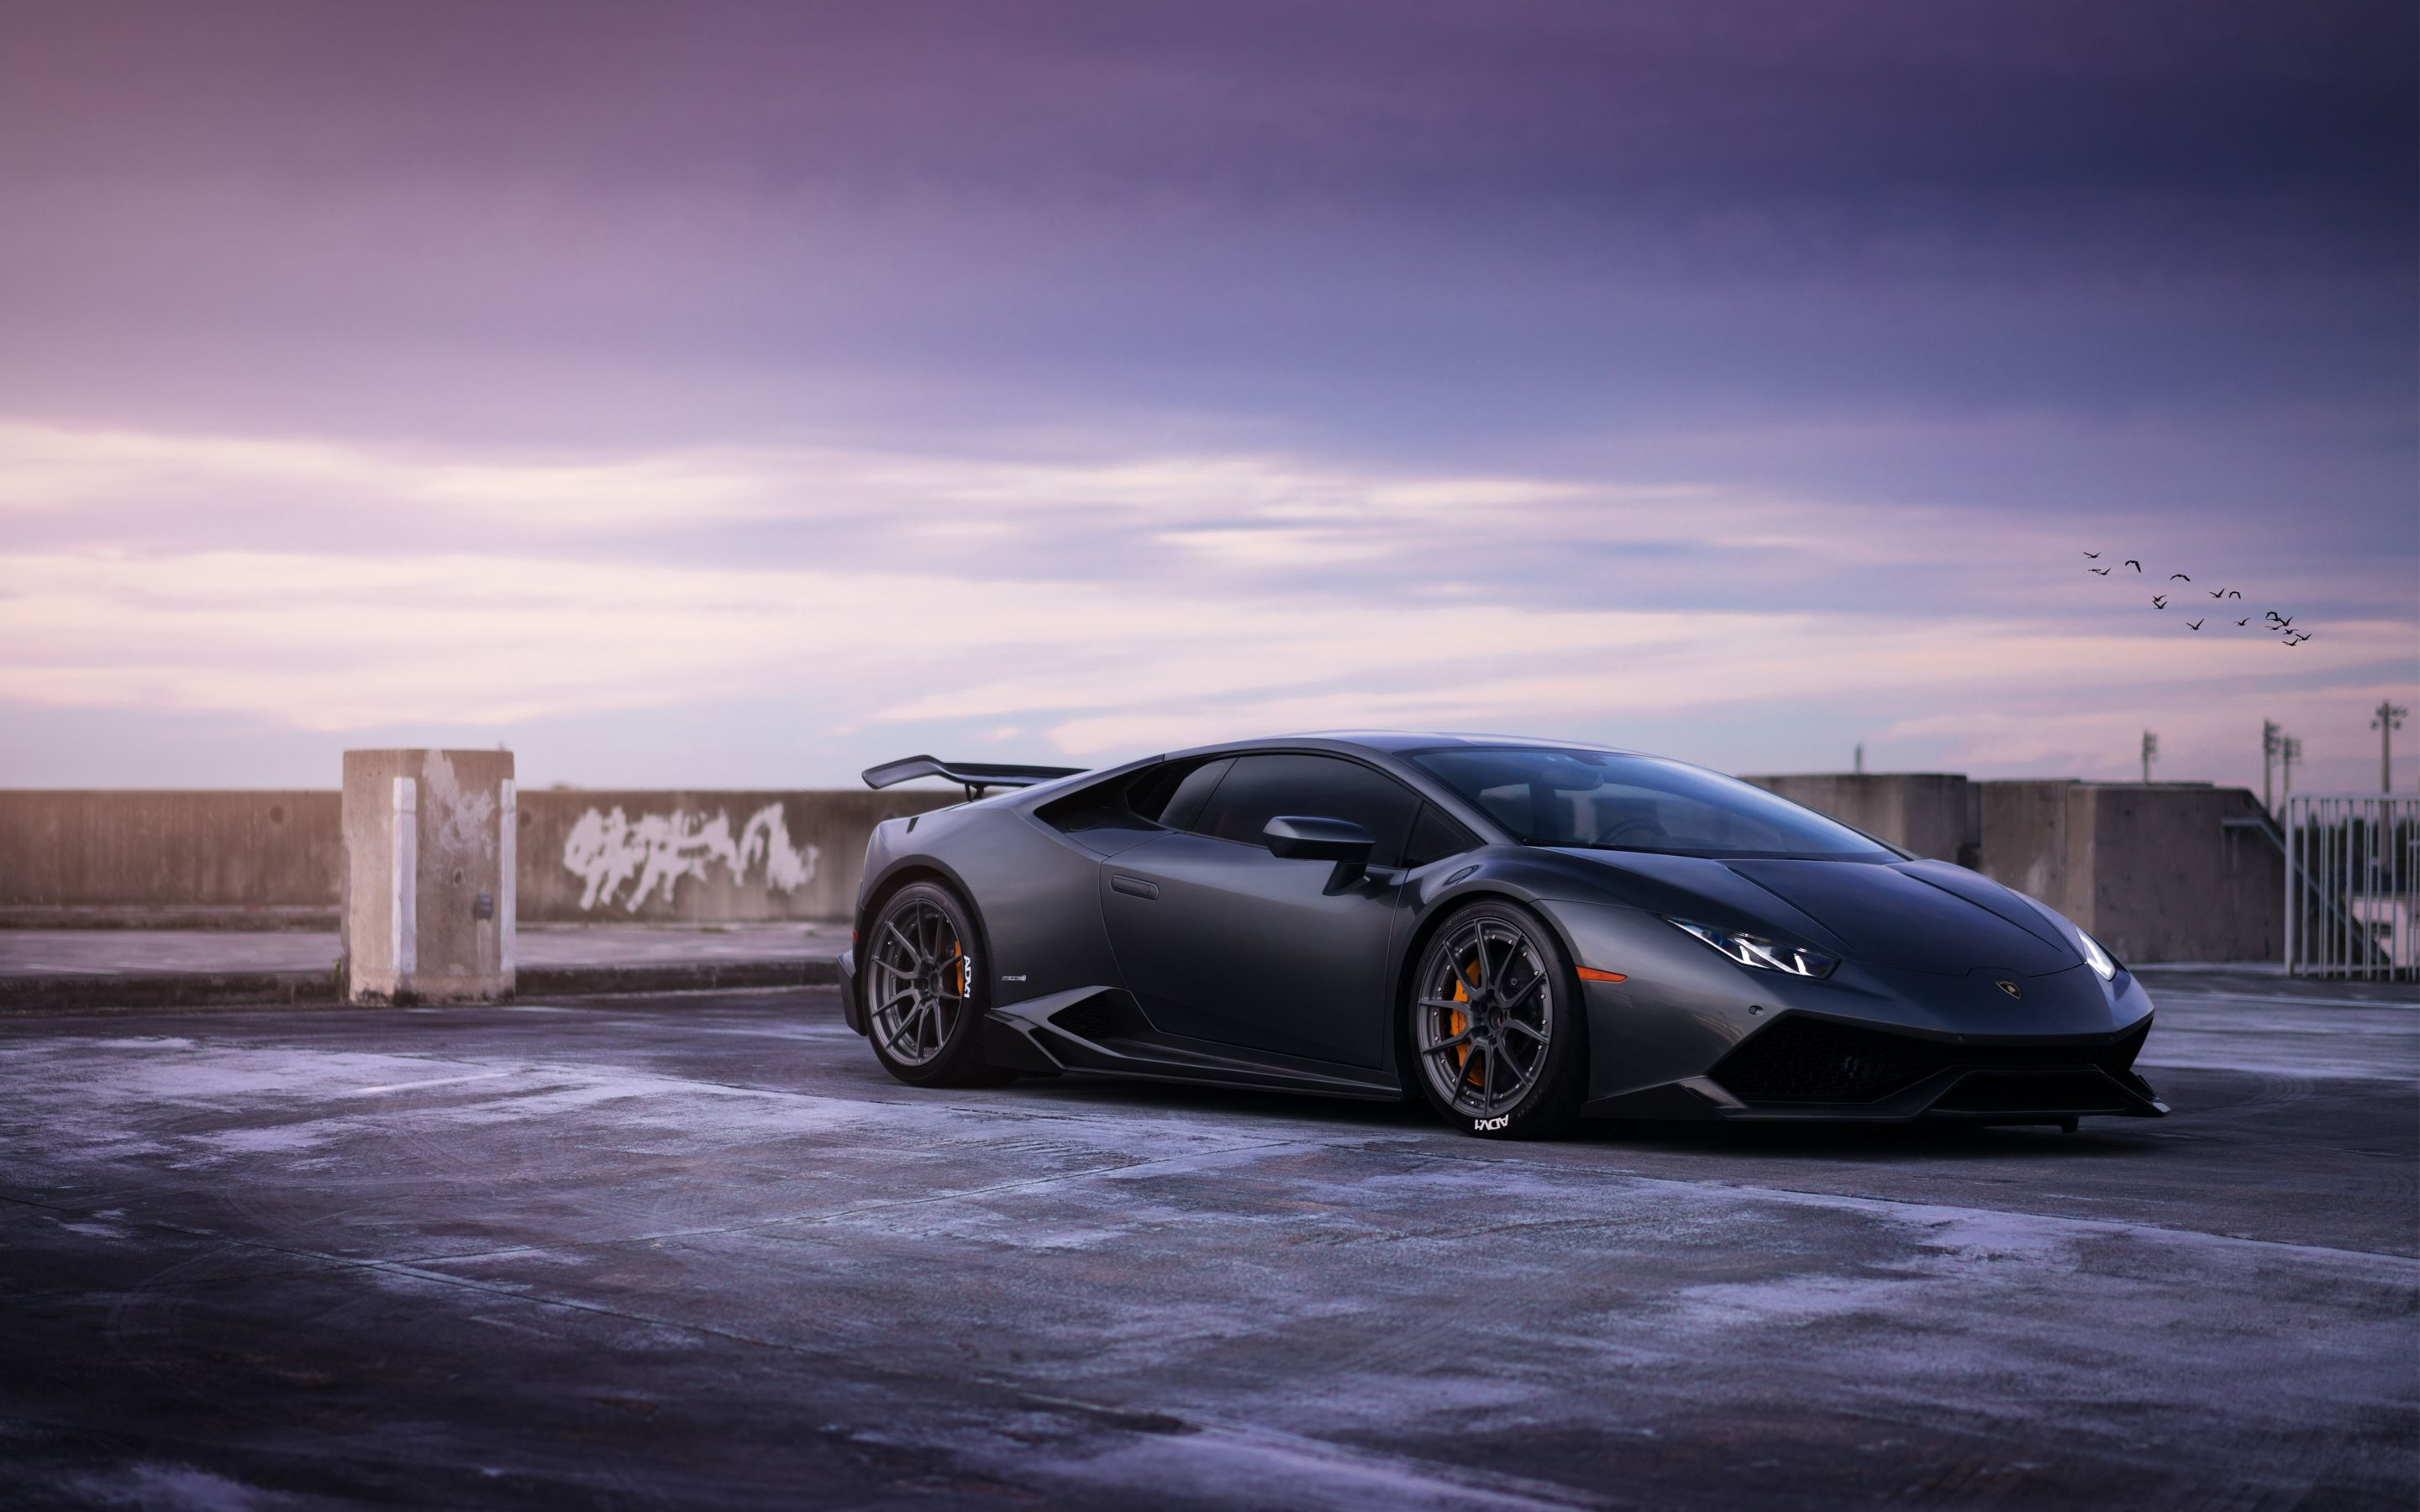 Download Wallpaper Mac Lamborghini - 5eb264510ecb0501127adbaad9fbfa6a  Image_477454.jpg